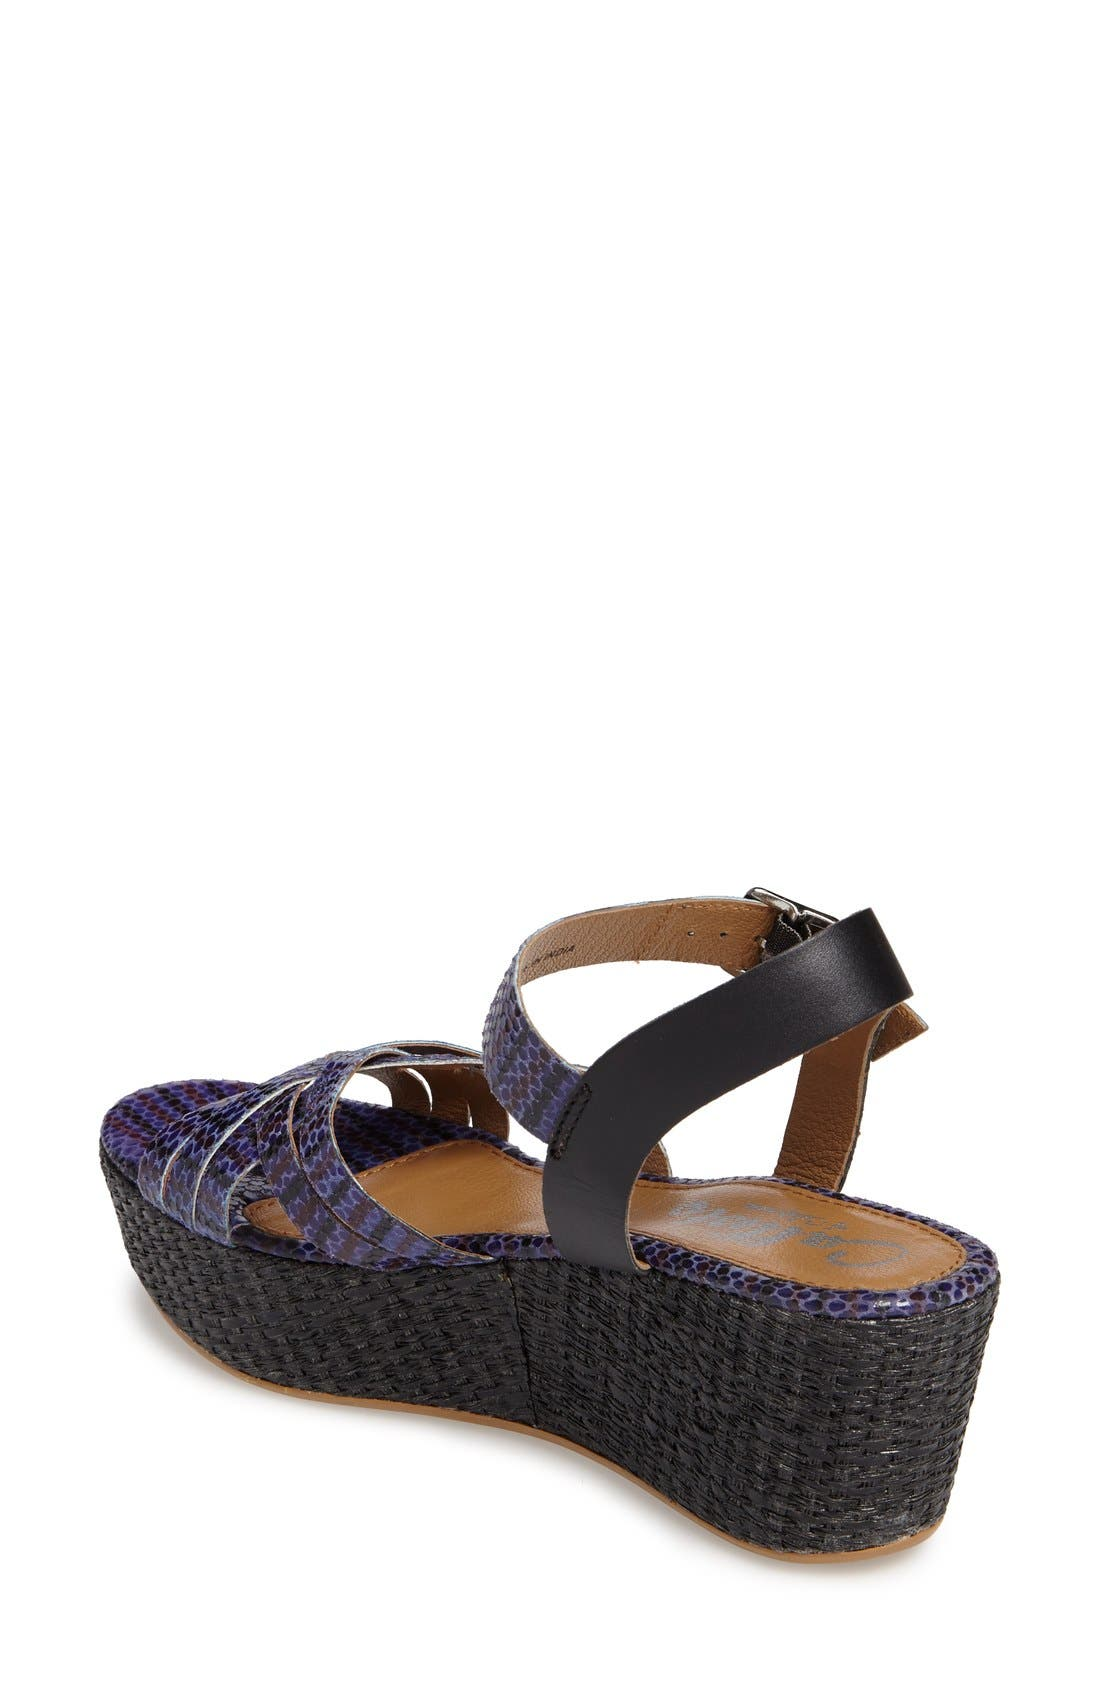 Valencia Platform Wedge Sandal,                             Alternate thumbnail 8, color,                             429